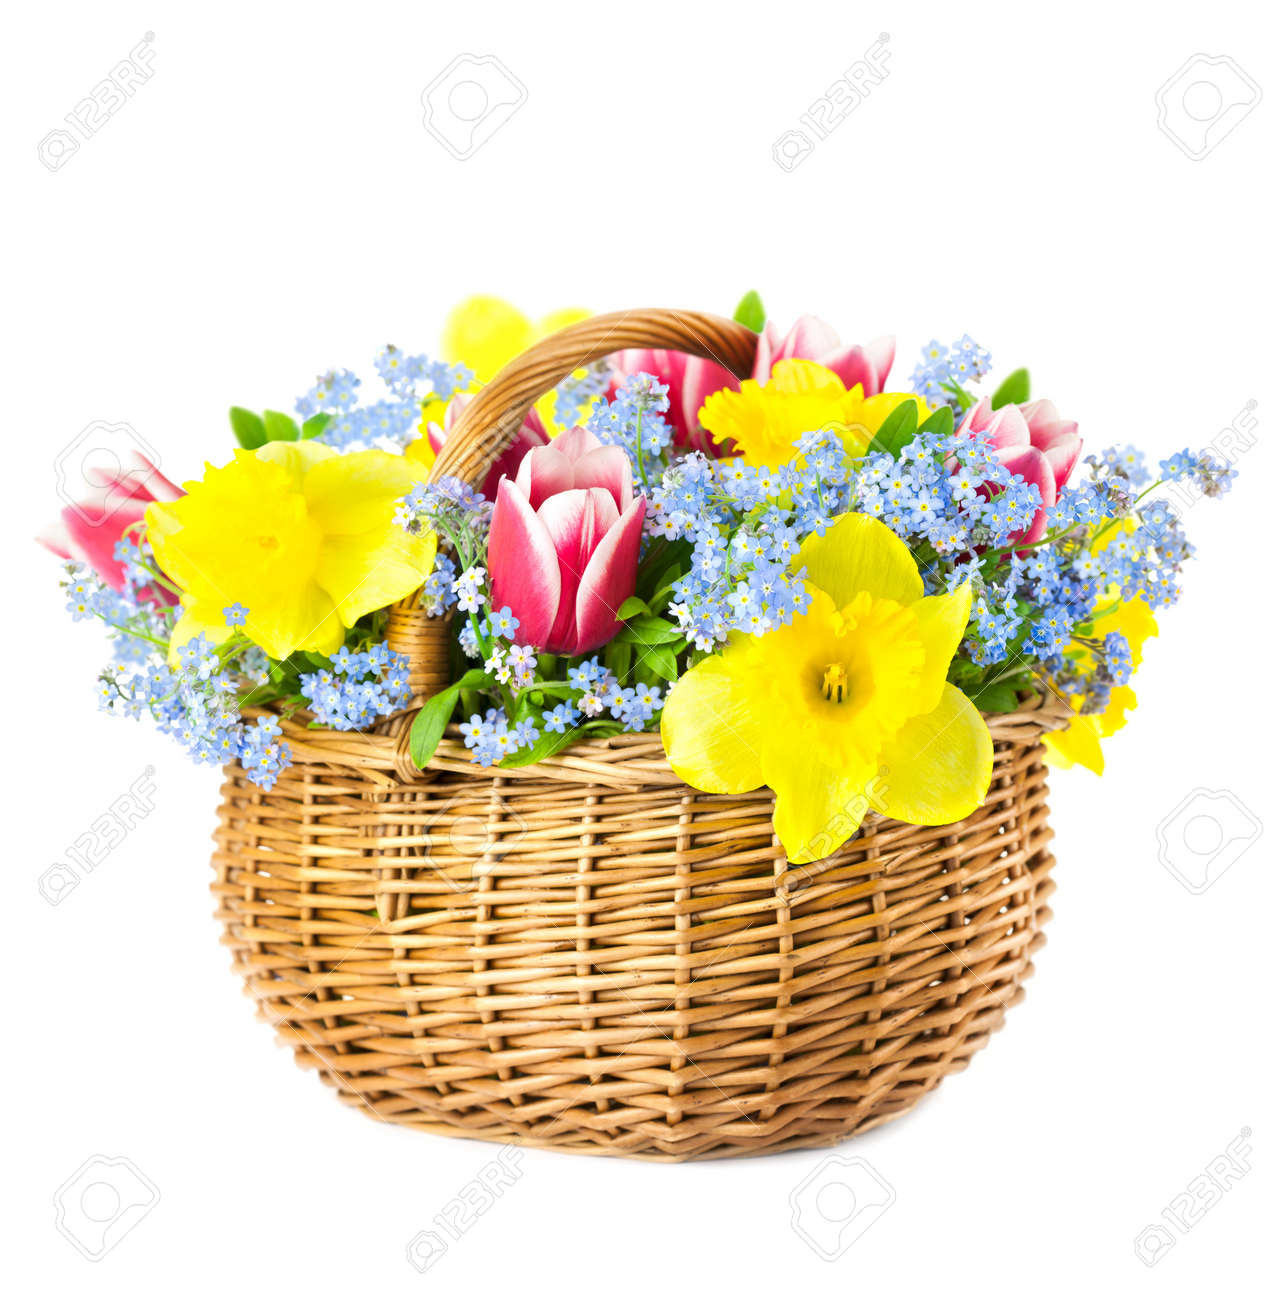 Beautiful Bouquet Of Spring Flowers In Basket Isoliert Auf Weissem